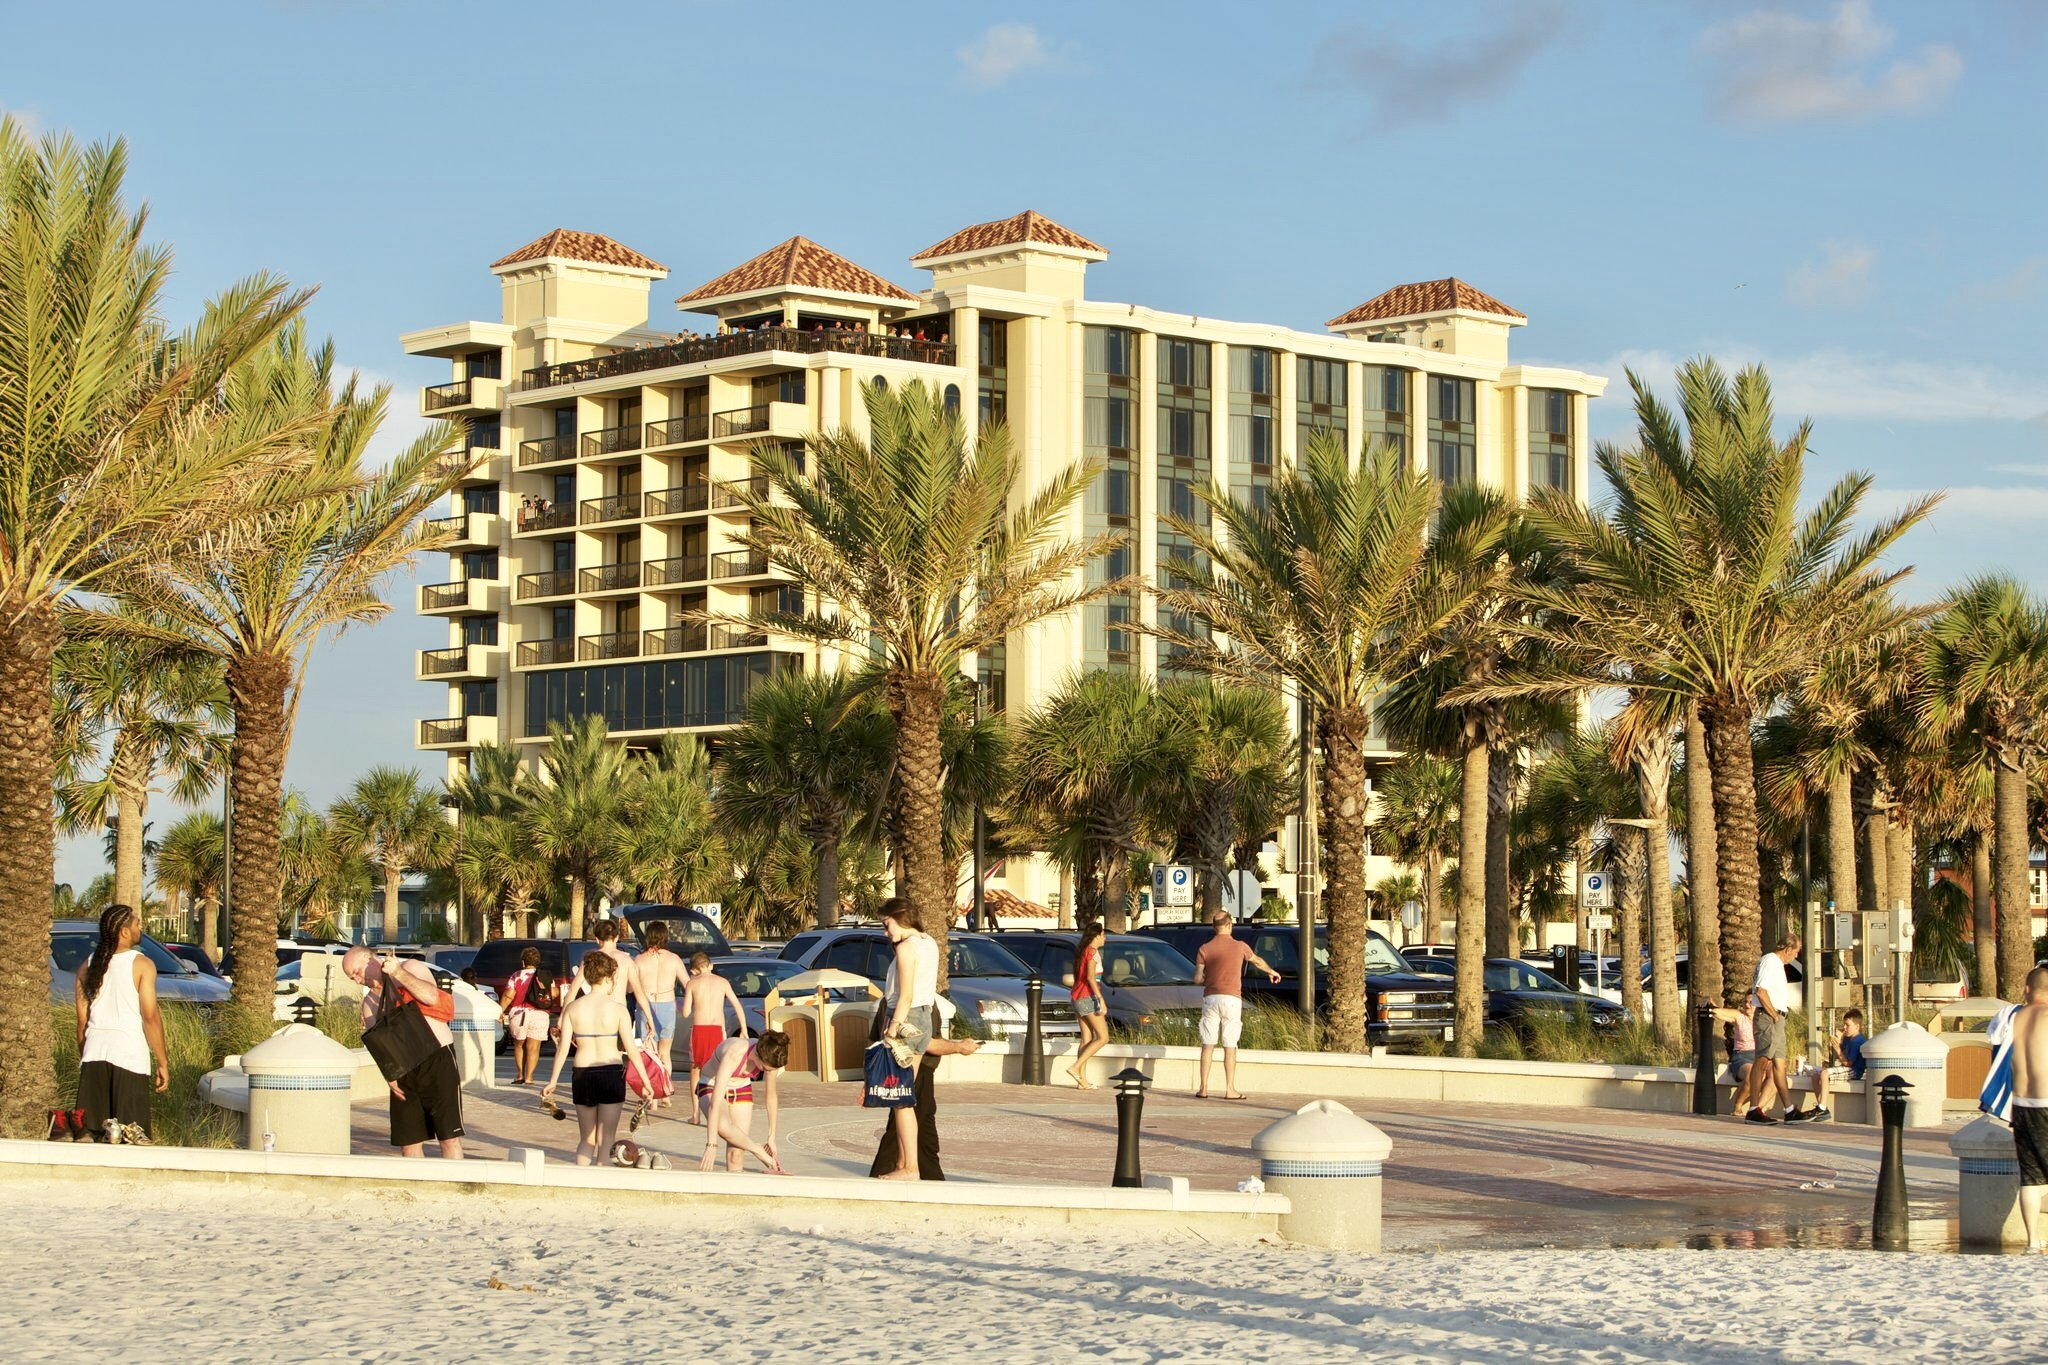 hotel in clearwater florida pier house 60 marina hotel